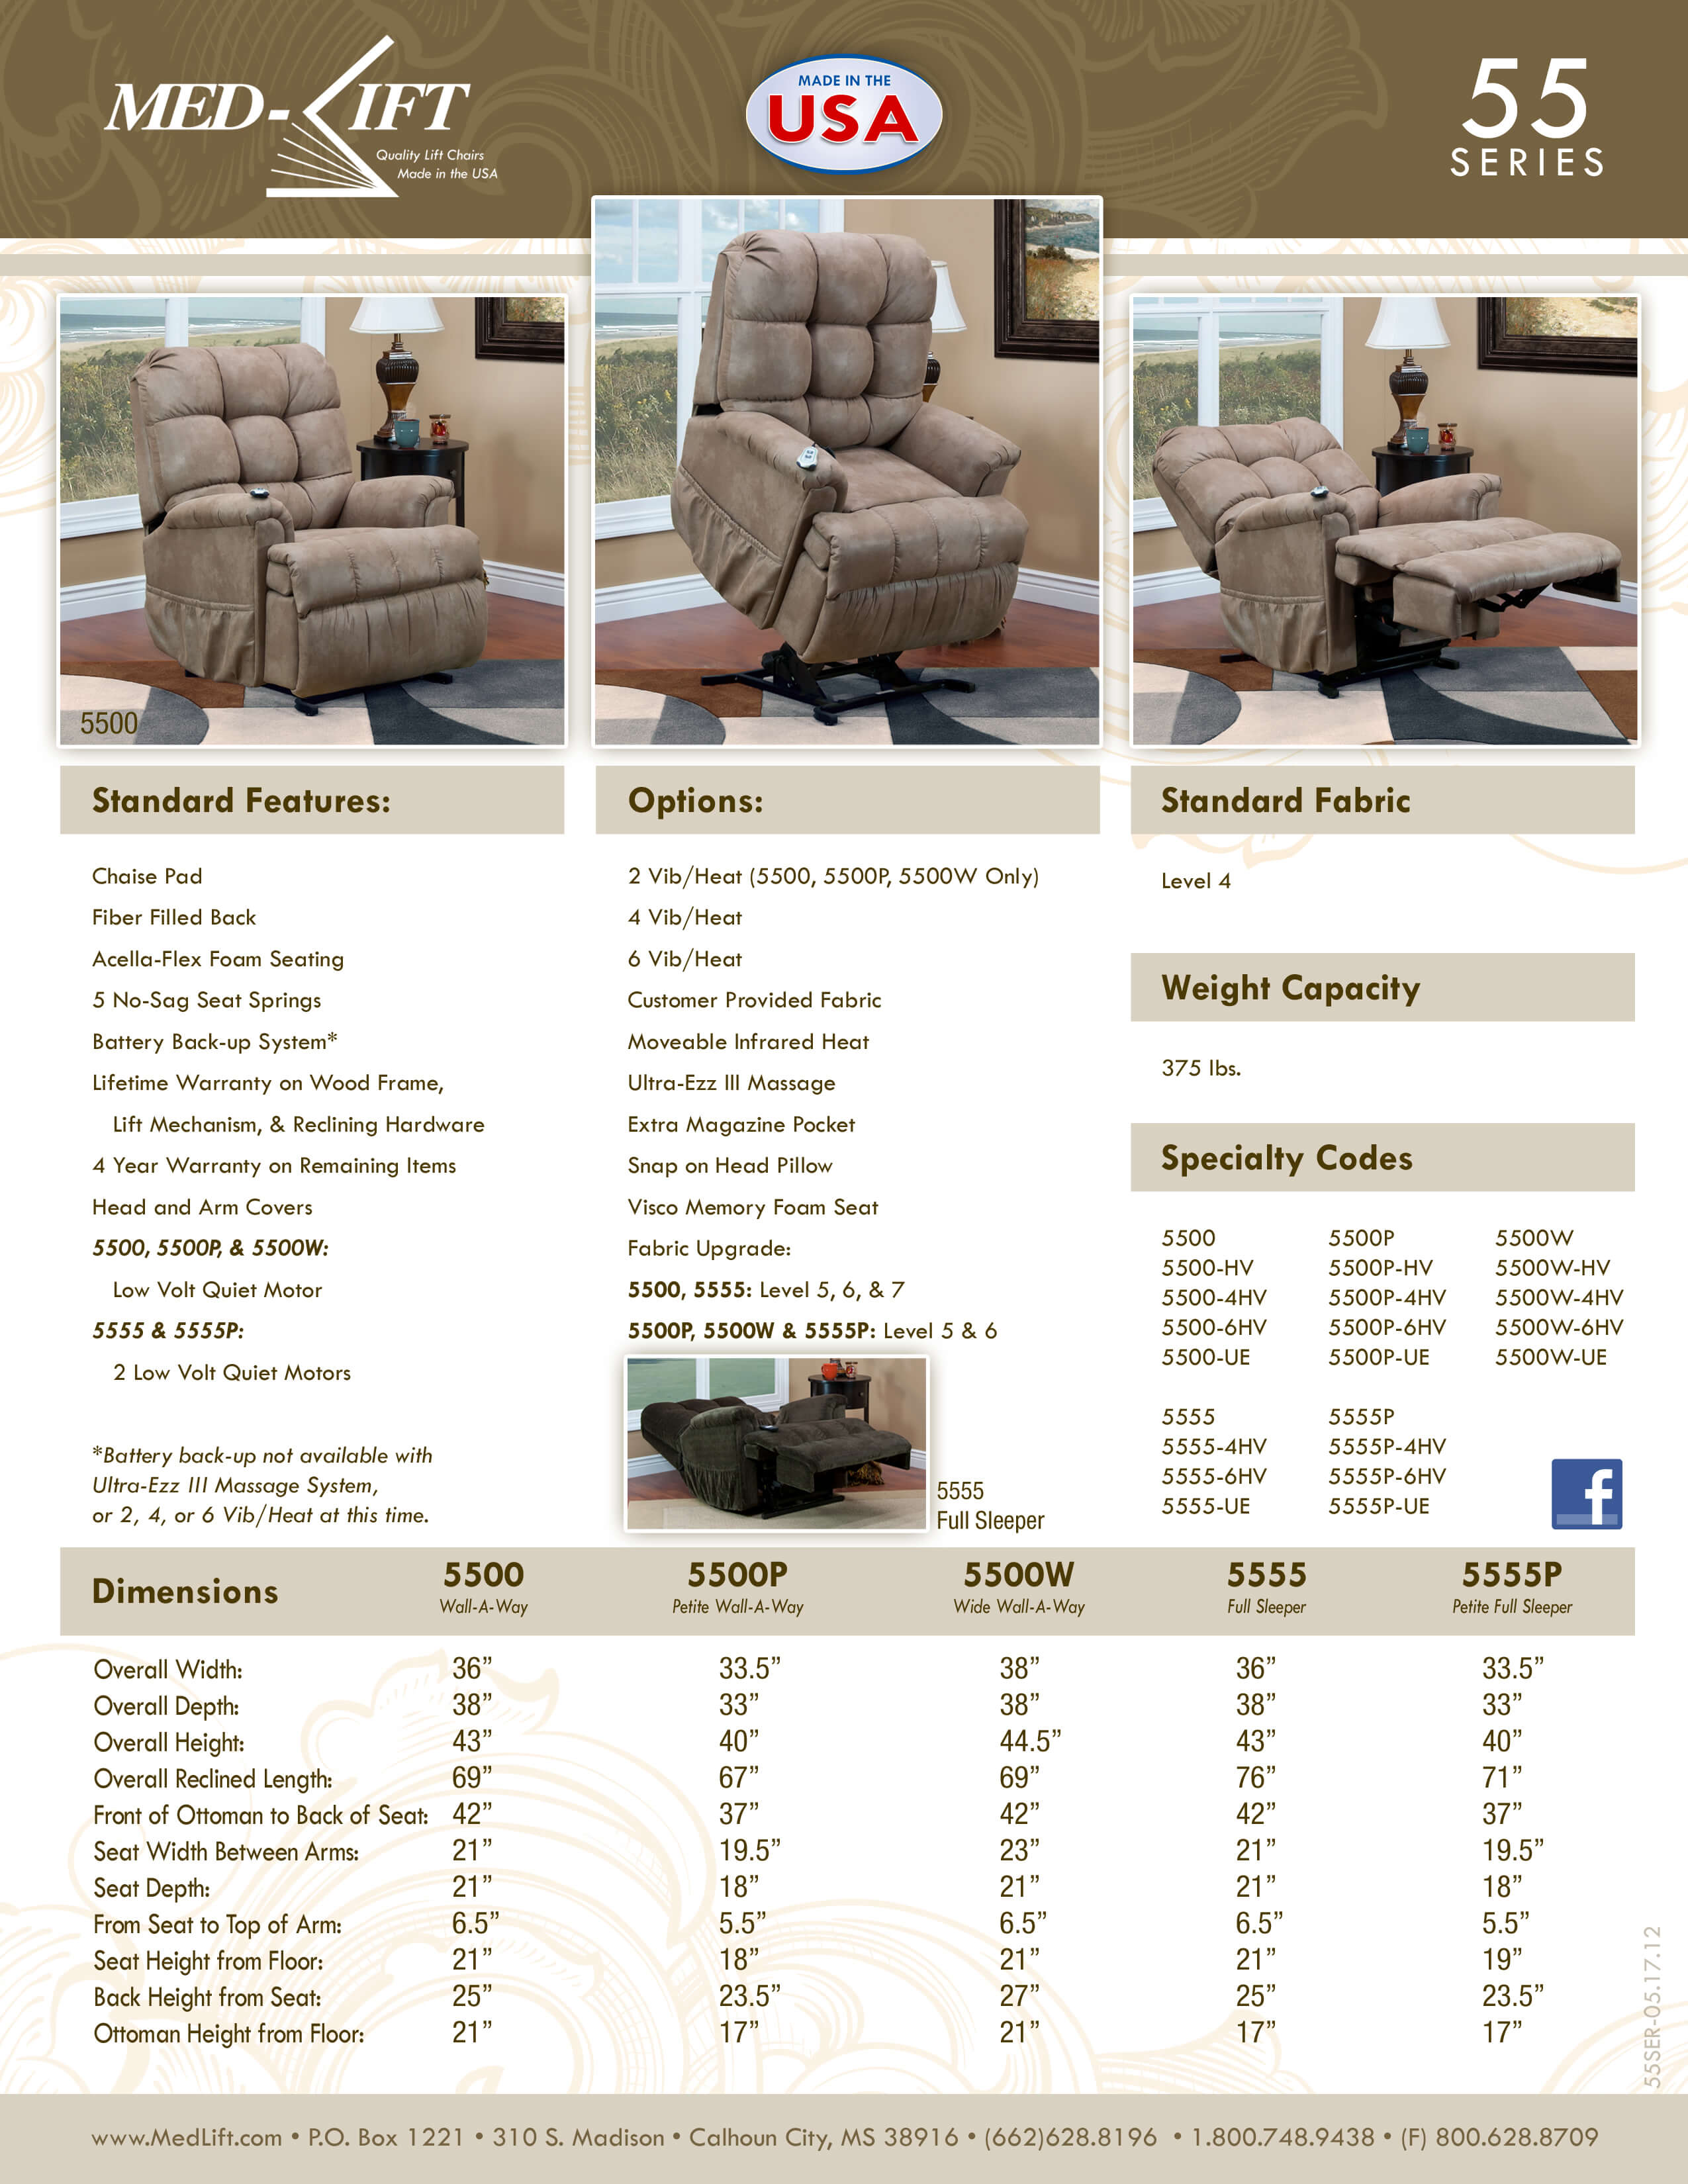 5555 Full Sleeper Infinite Position Reclining Lift Chair by Med